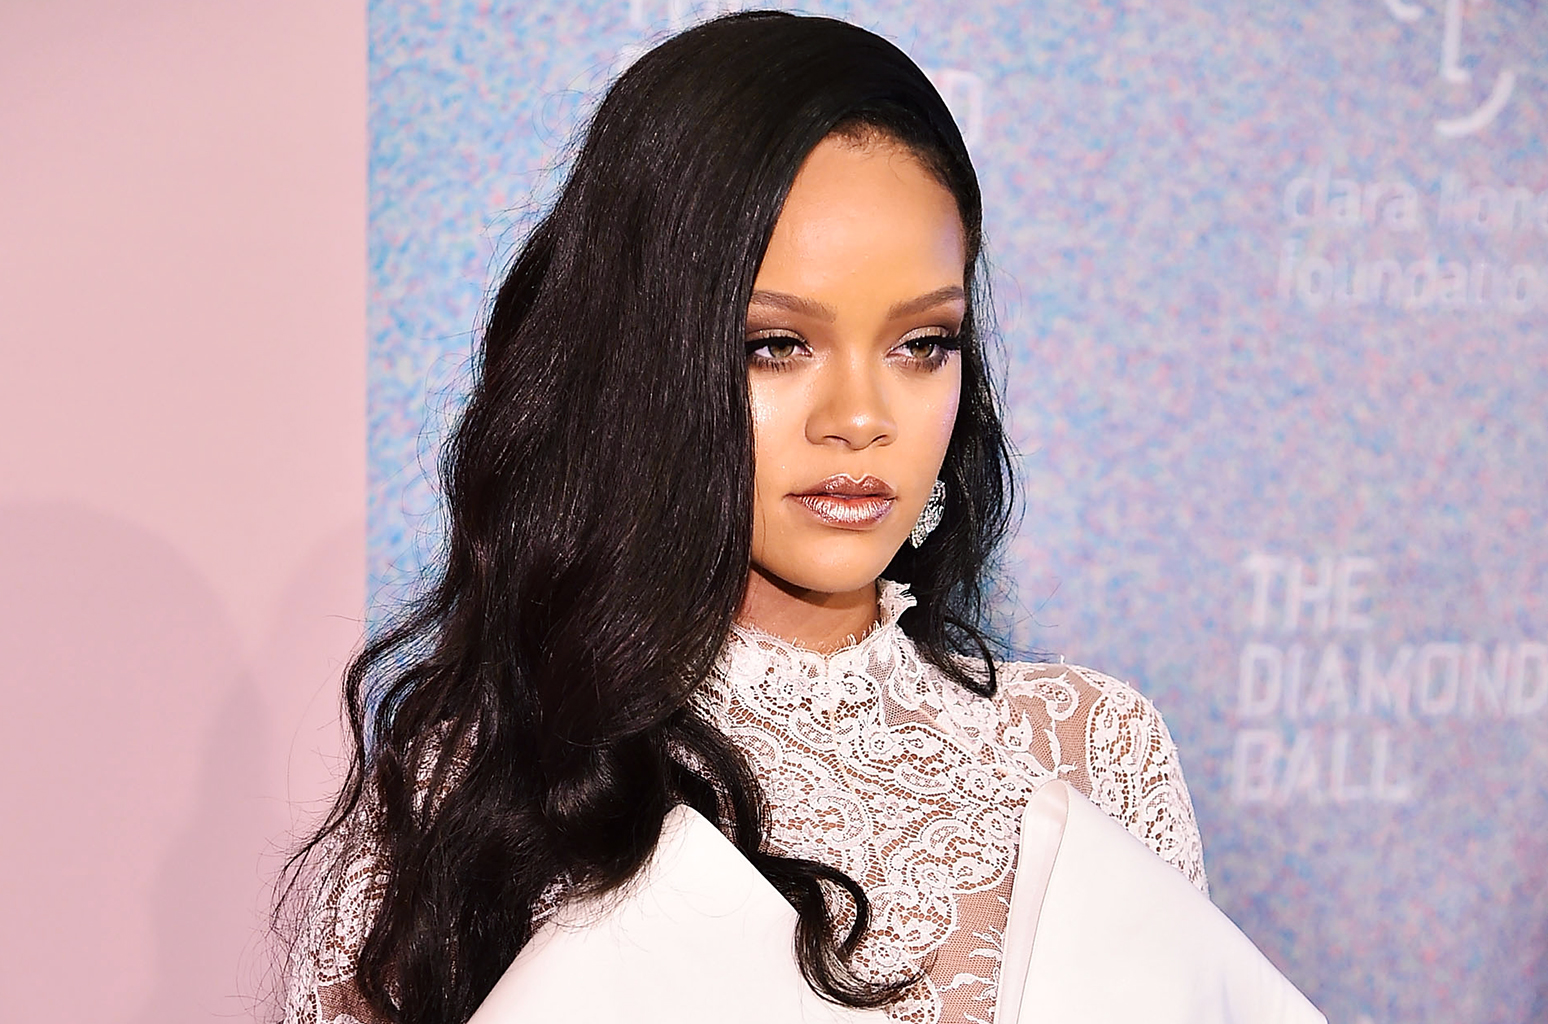 Rihanna Almost Dropped Her Phone After Finding Her Mini-Me Online